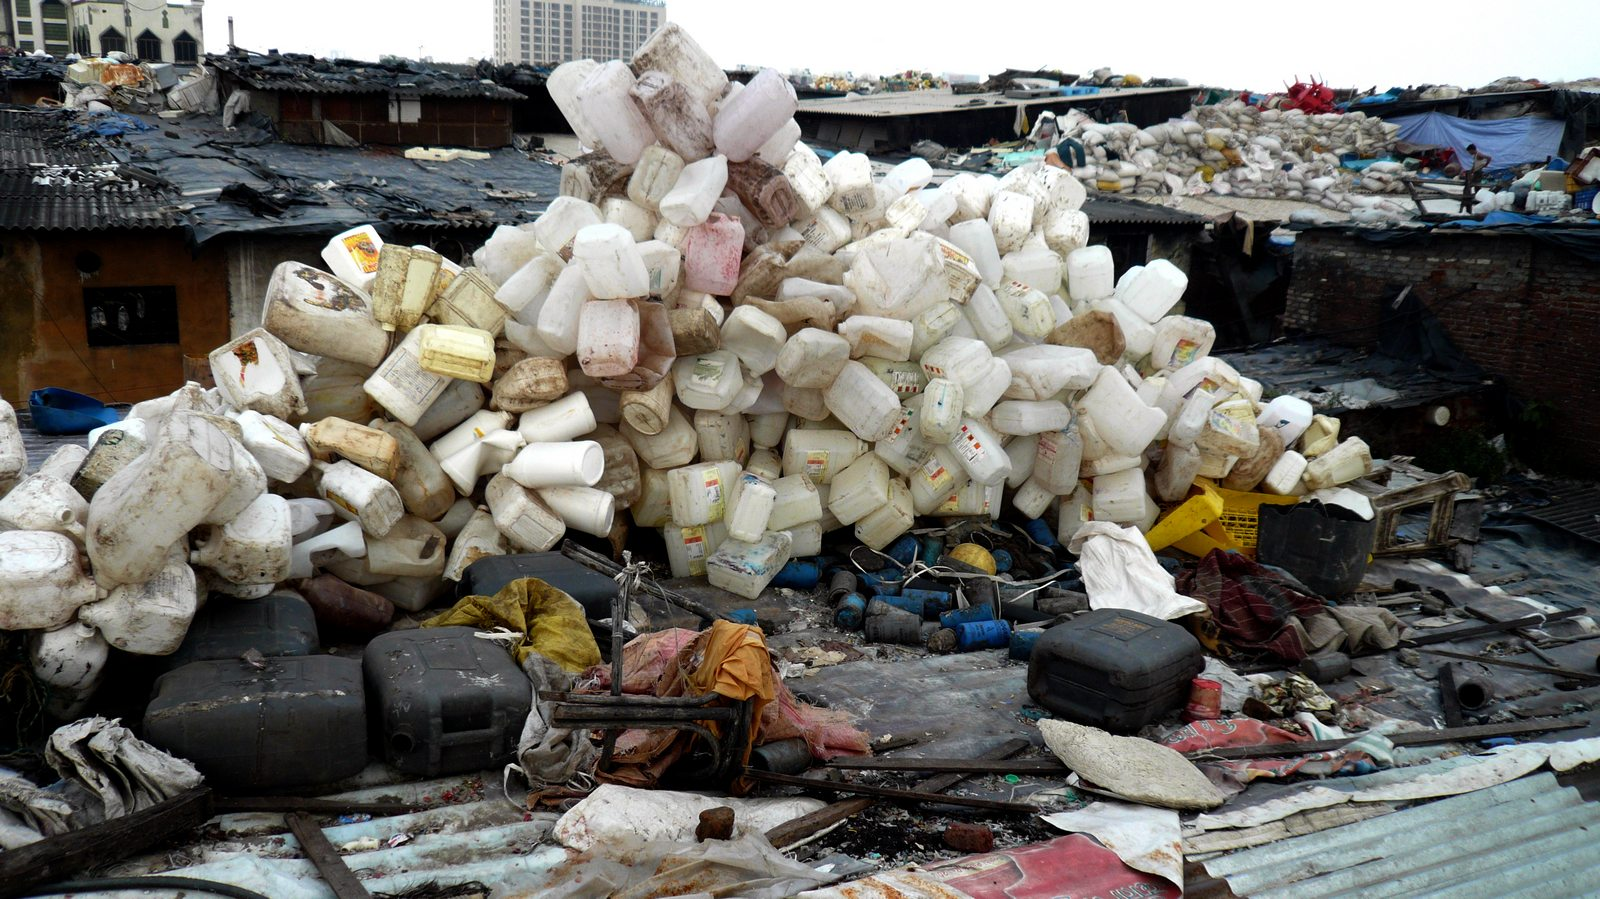 Plastic-recycling-factory-roof-Dharavi-slum-Mumbai-India1.jpg (1600×899)